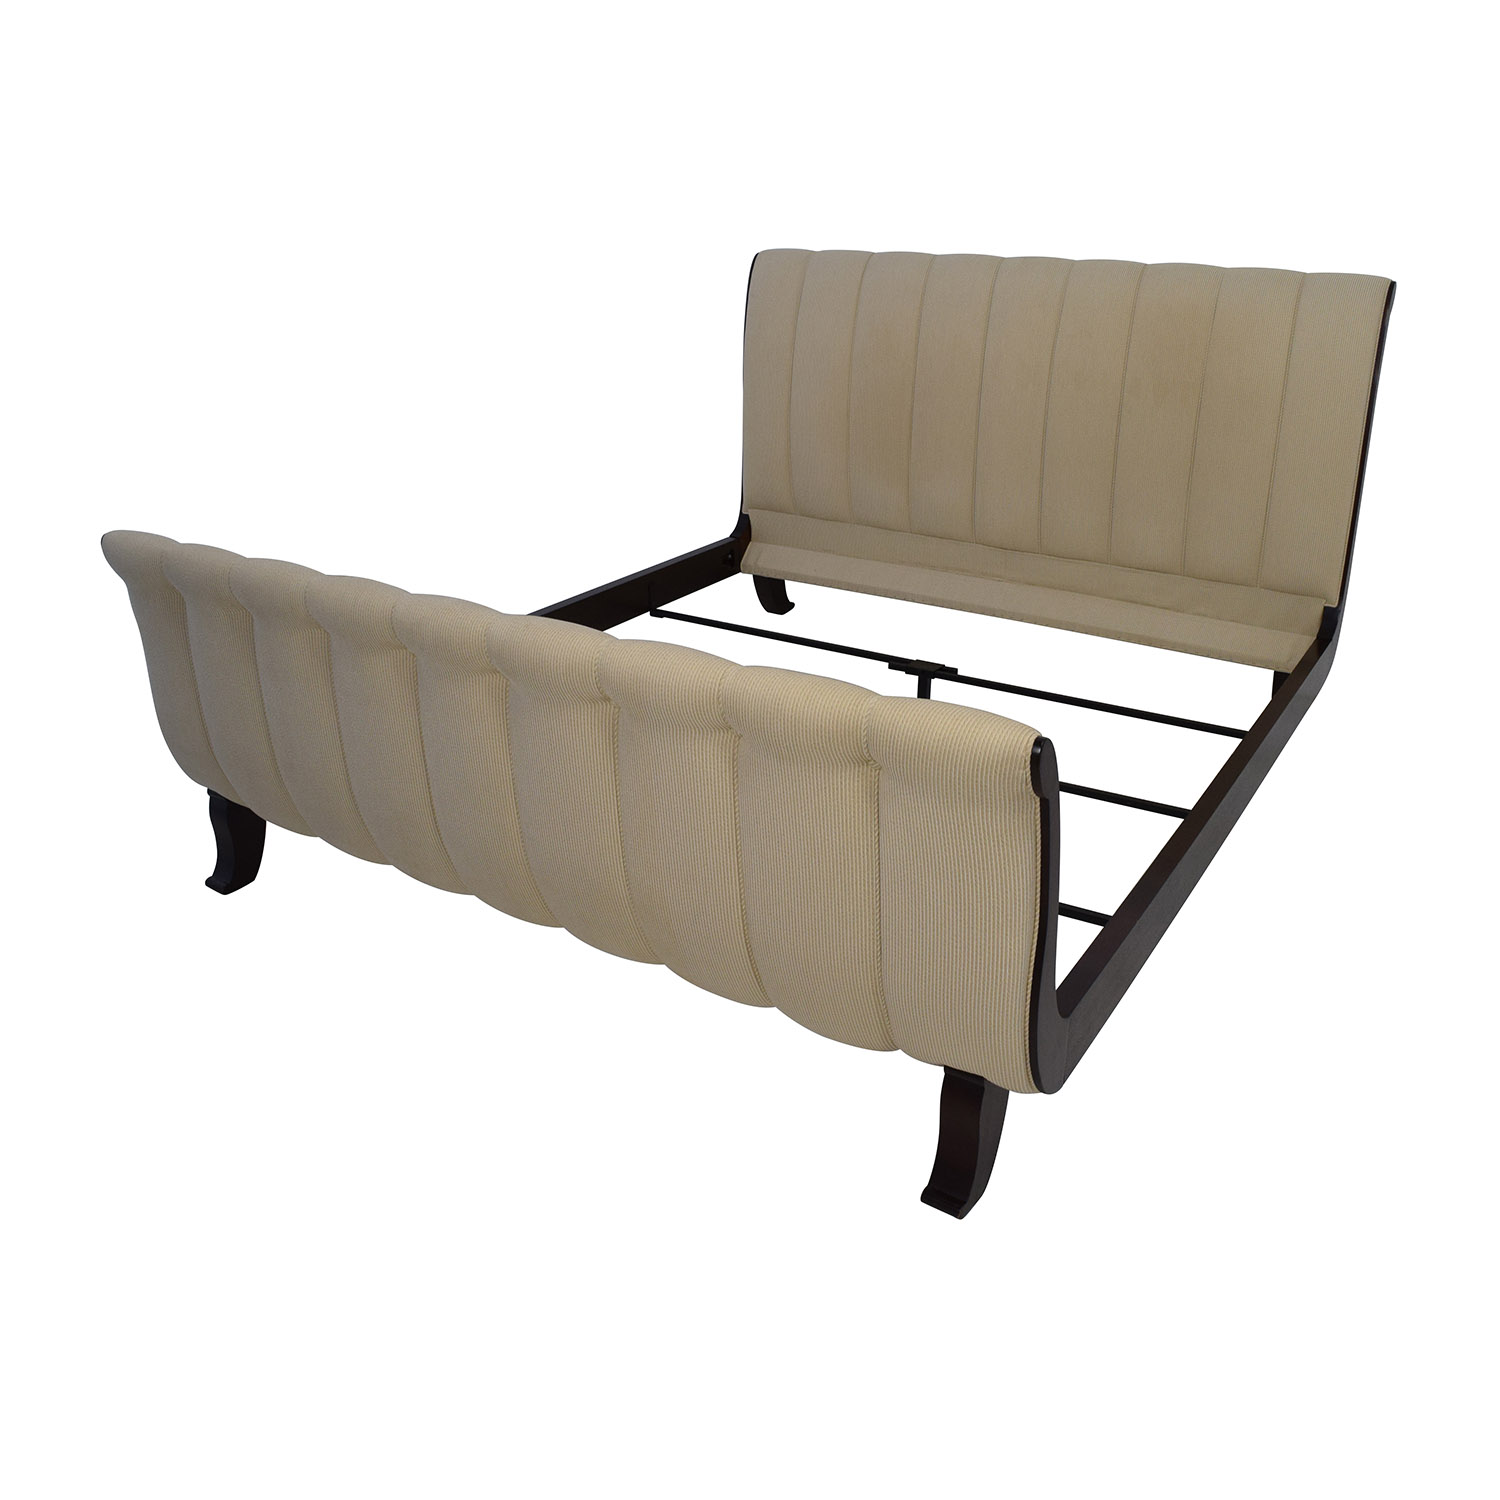 90 off lillian august lillian august upholstered king for Home furniture beds